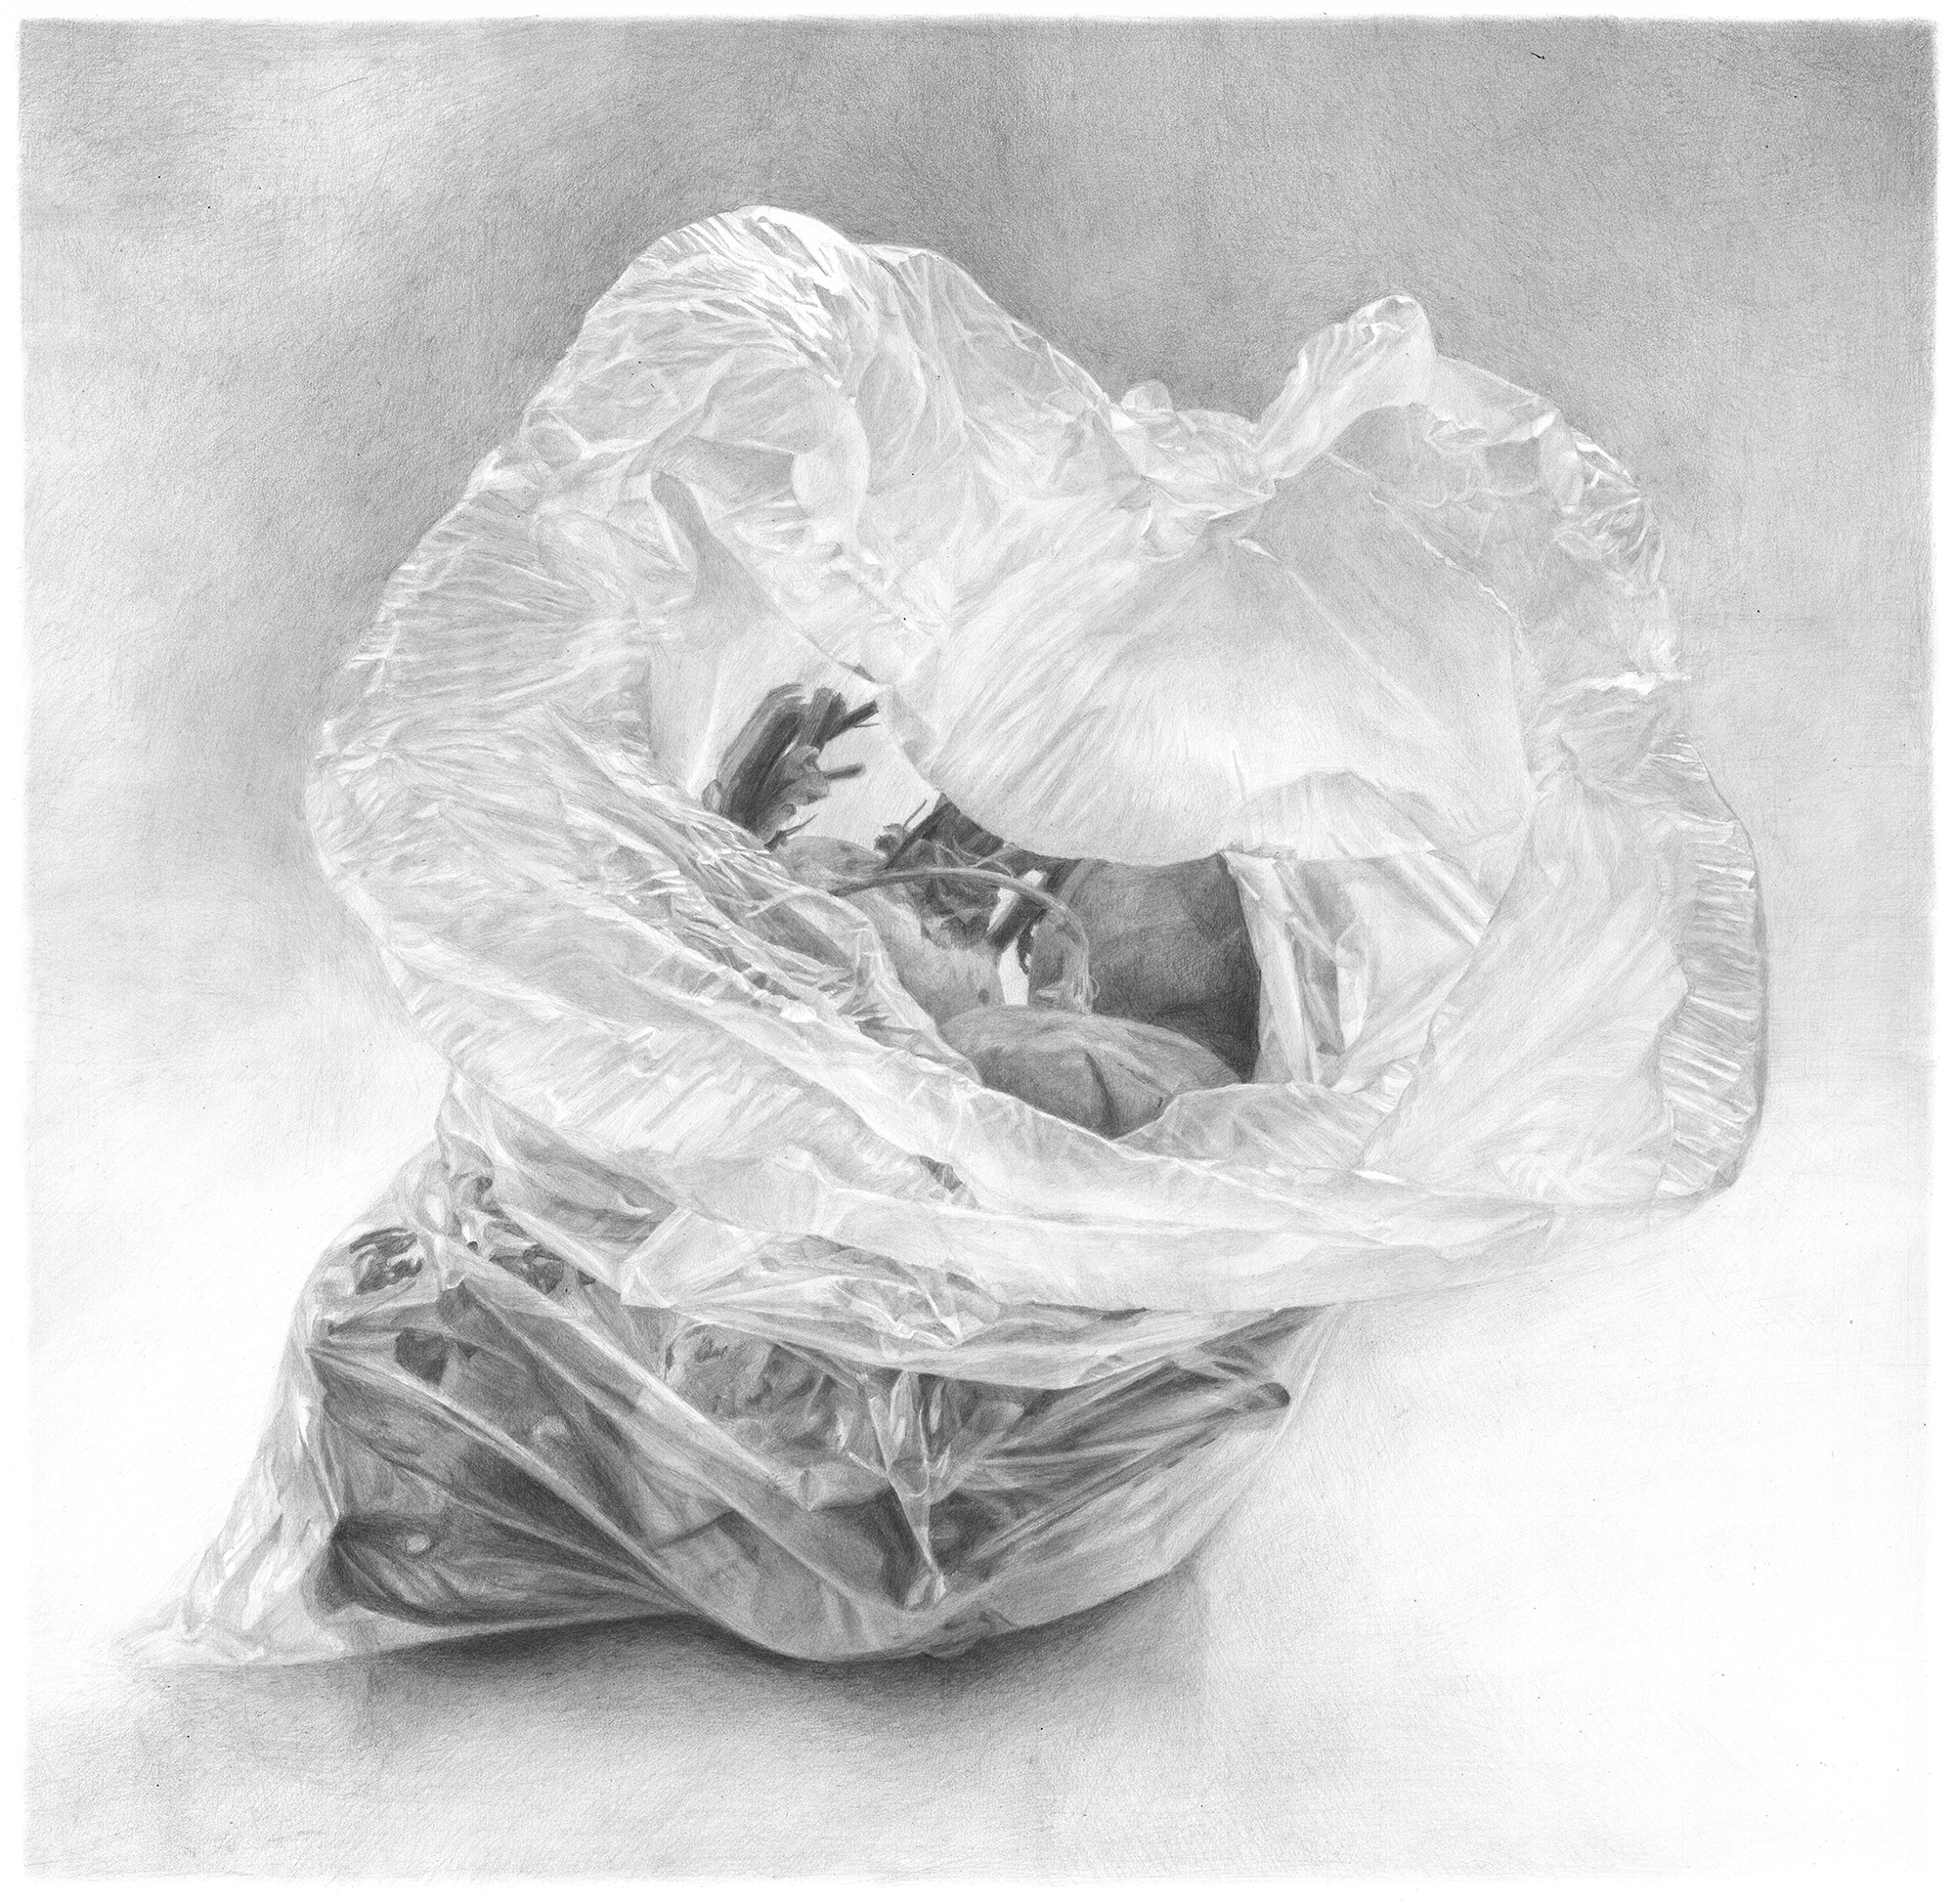 Ilana Dotan, Plastic bag with beets, pencil on paper, 50 * 50 * 1,  http://www.ilanart.co.il